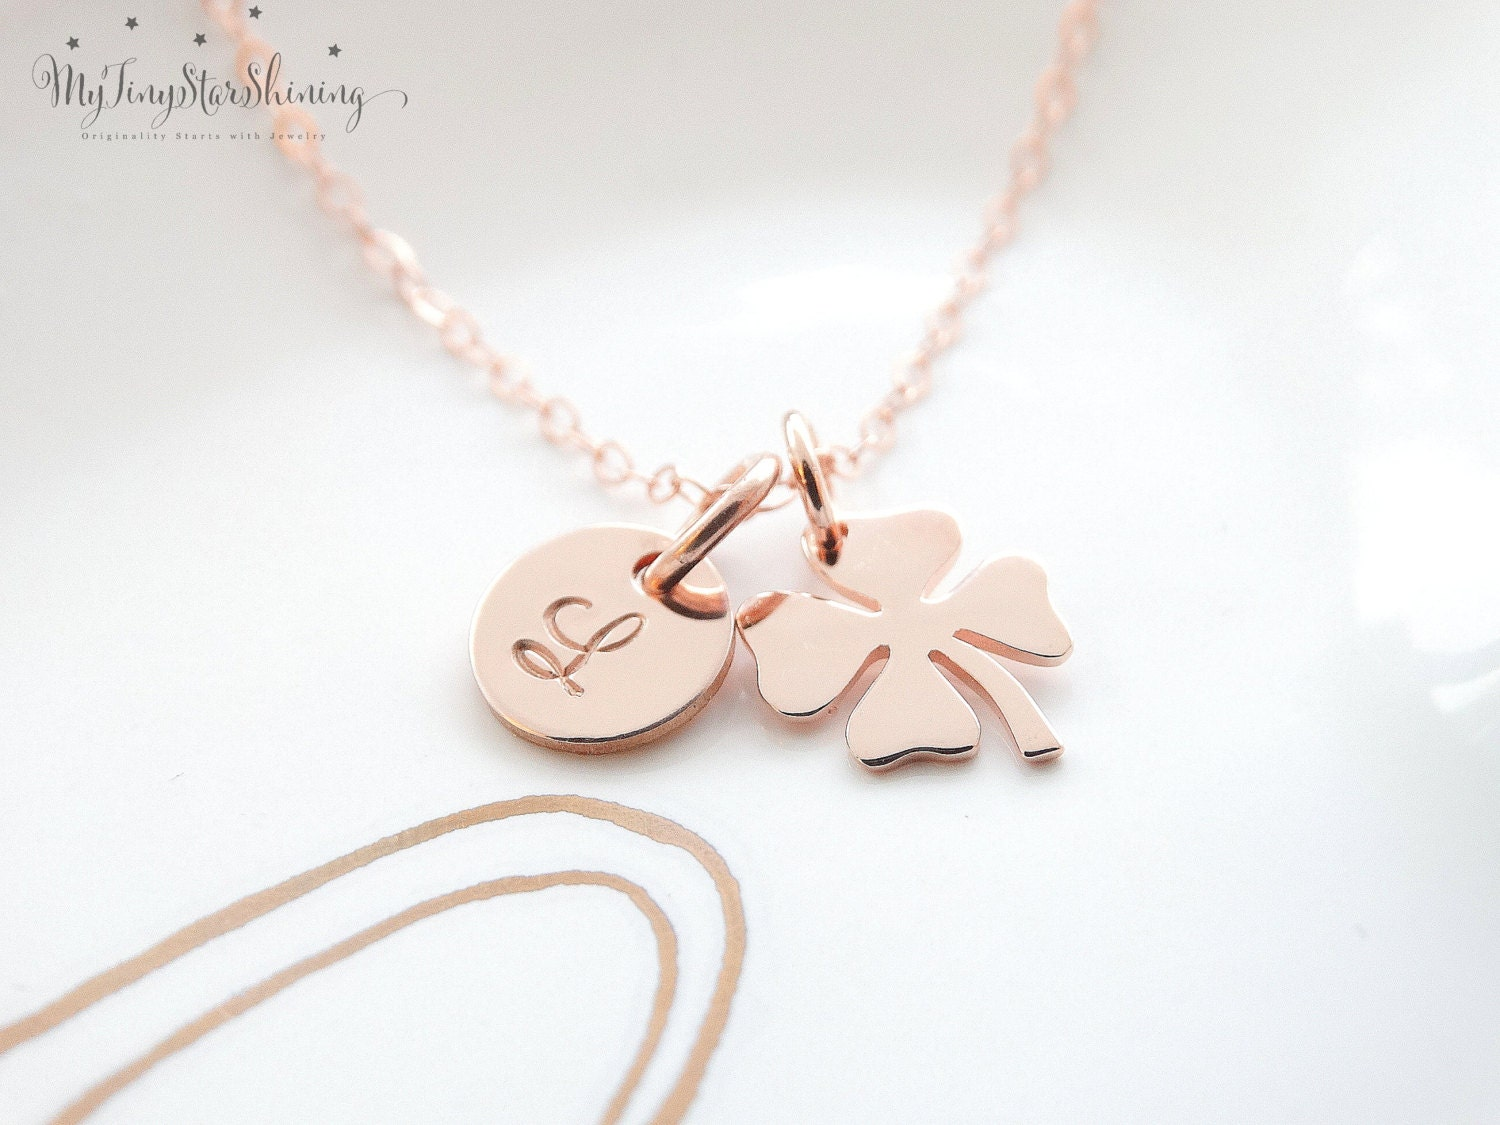 four beautiful a pendant necklace clover charm inch sterling has lucky this leaf and silver is wear simple pin that